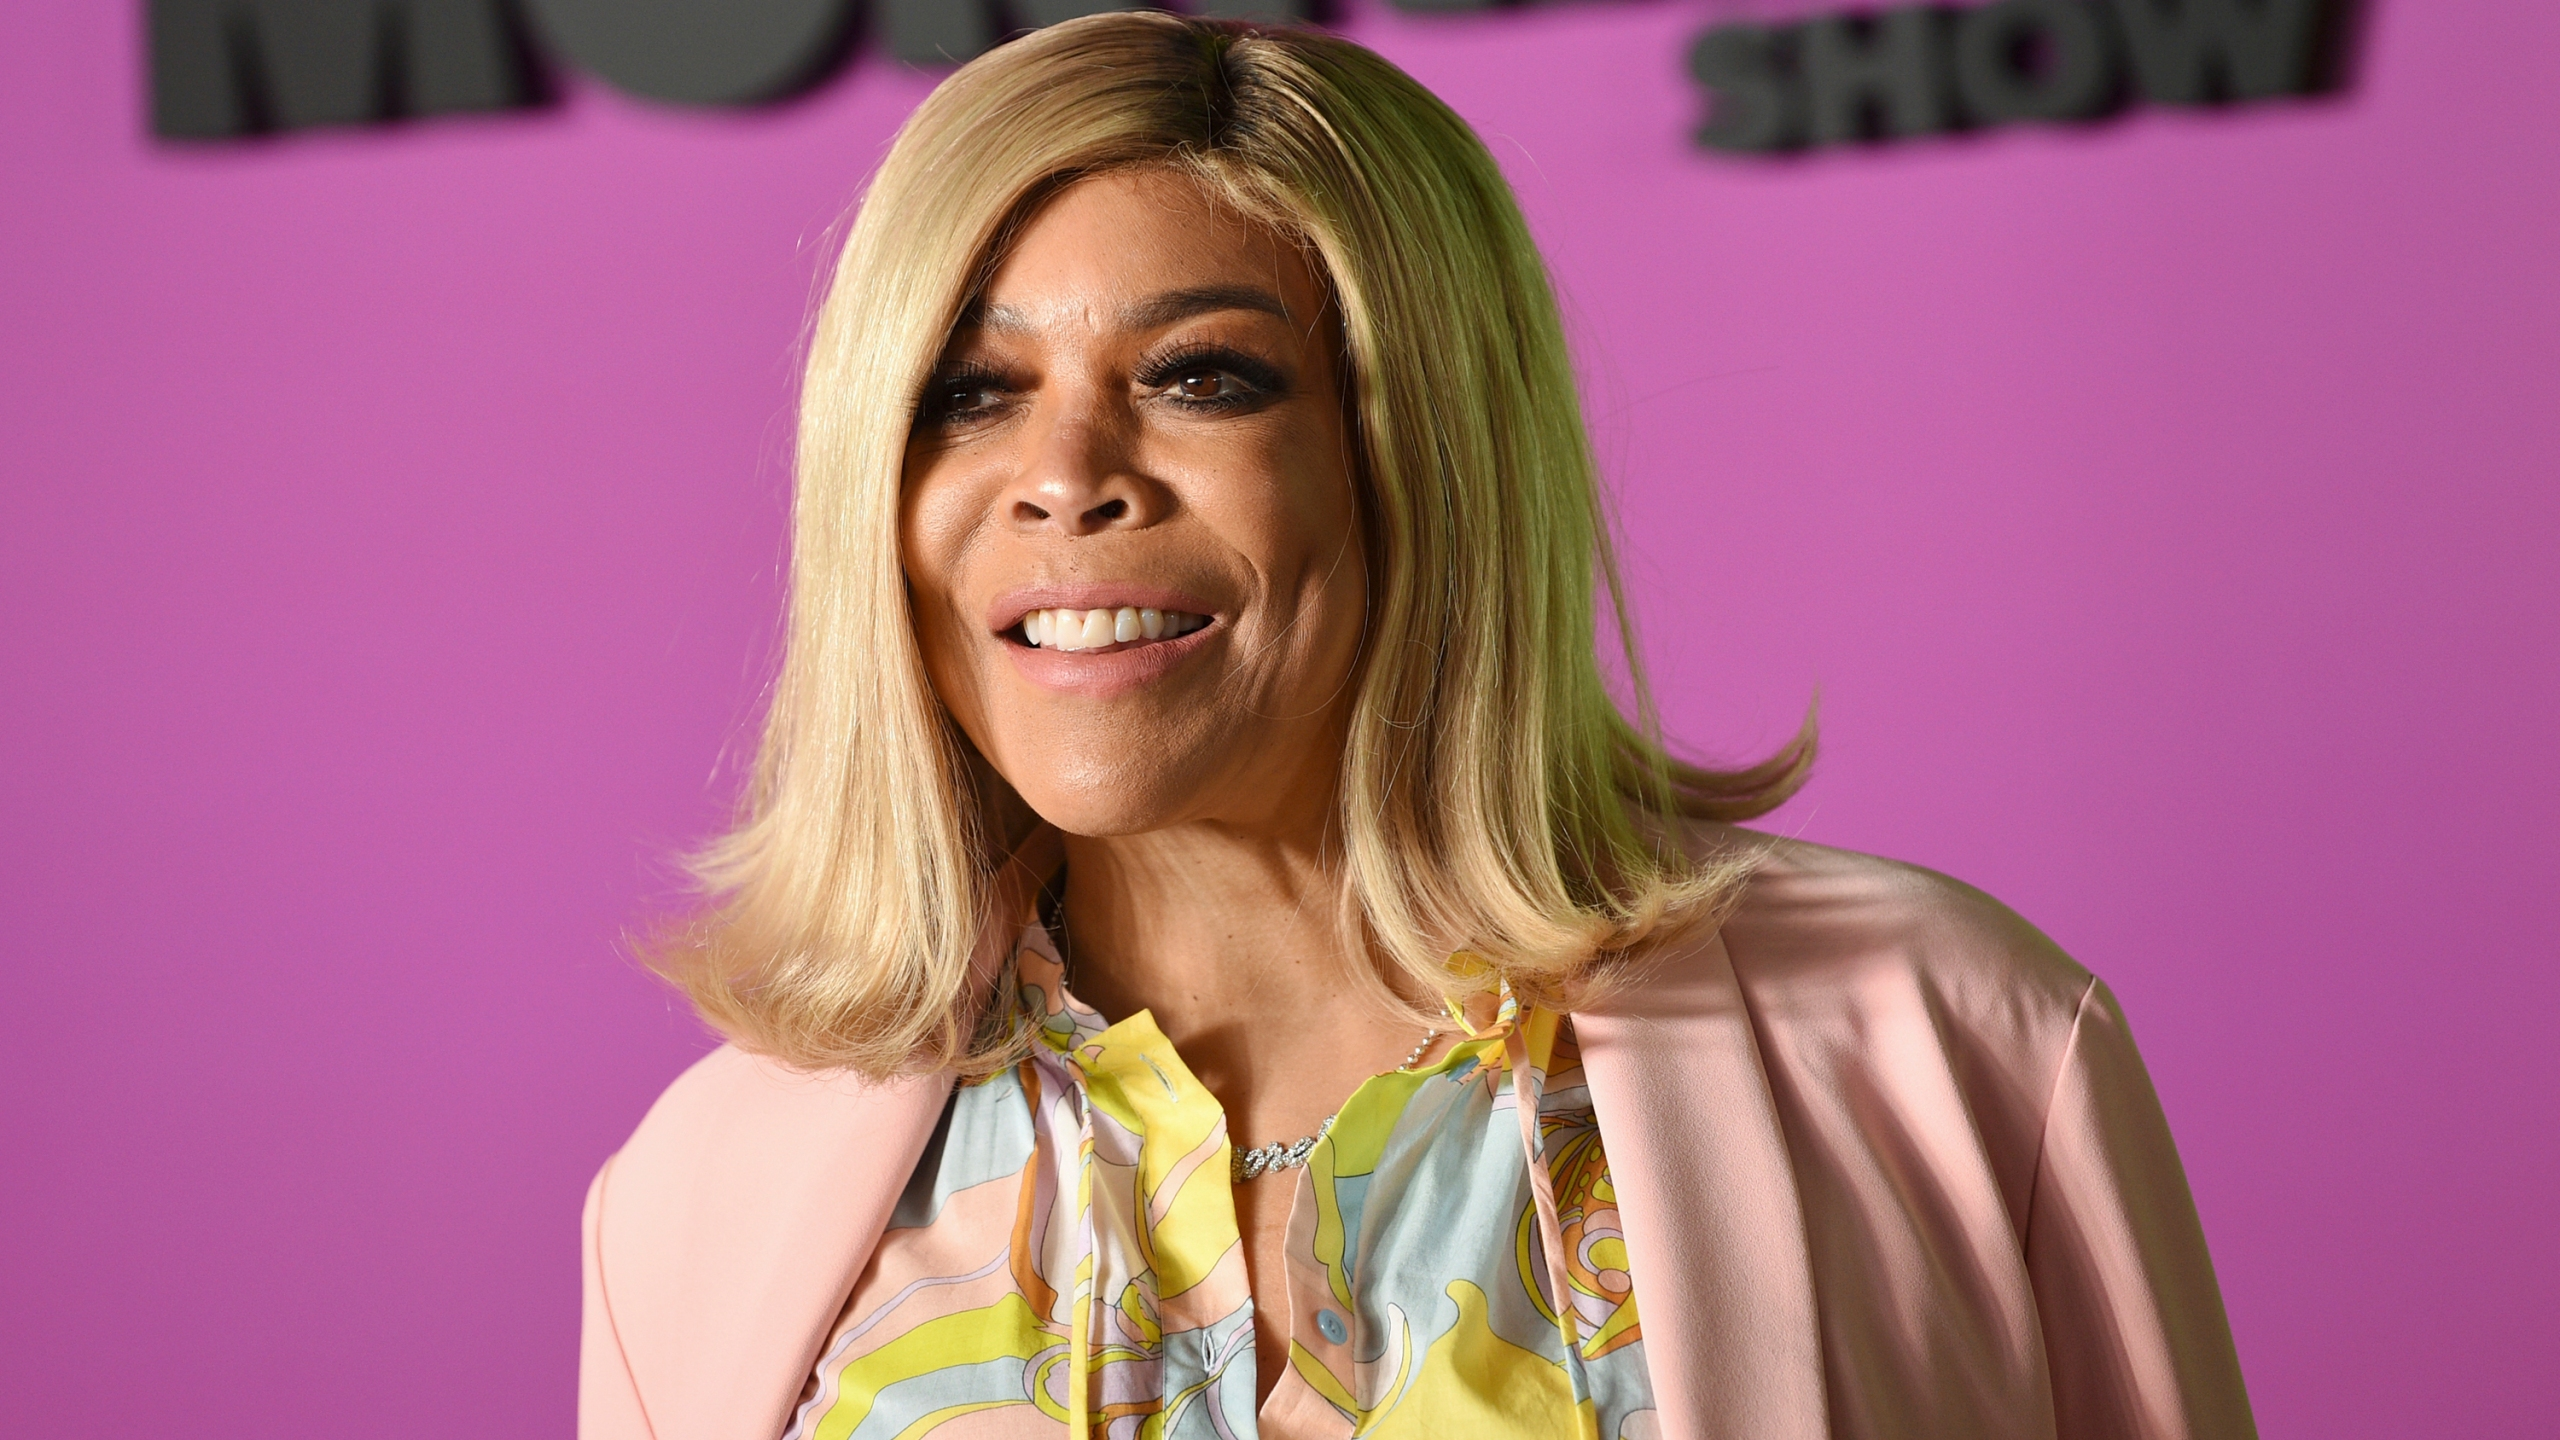 """FILE - In this Oct. 28, 2019 file photo, Wendy Williams attends the world premiere of Apple TV+'s """"The Morning Show"""" in New York. Williams is taking a break from her daytime talk show to receive treatment for a previously announced health condition. A spokesperson for """"The Wendy Williams Show"""" said that Williams has has been suffering fatigue because of symptoms from Graves' disease. (Photo by Evan Agostini/Invision/AP, File)"""